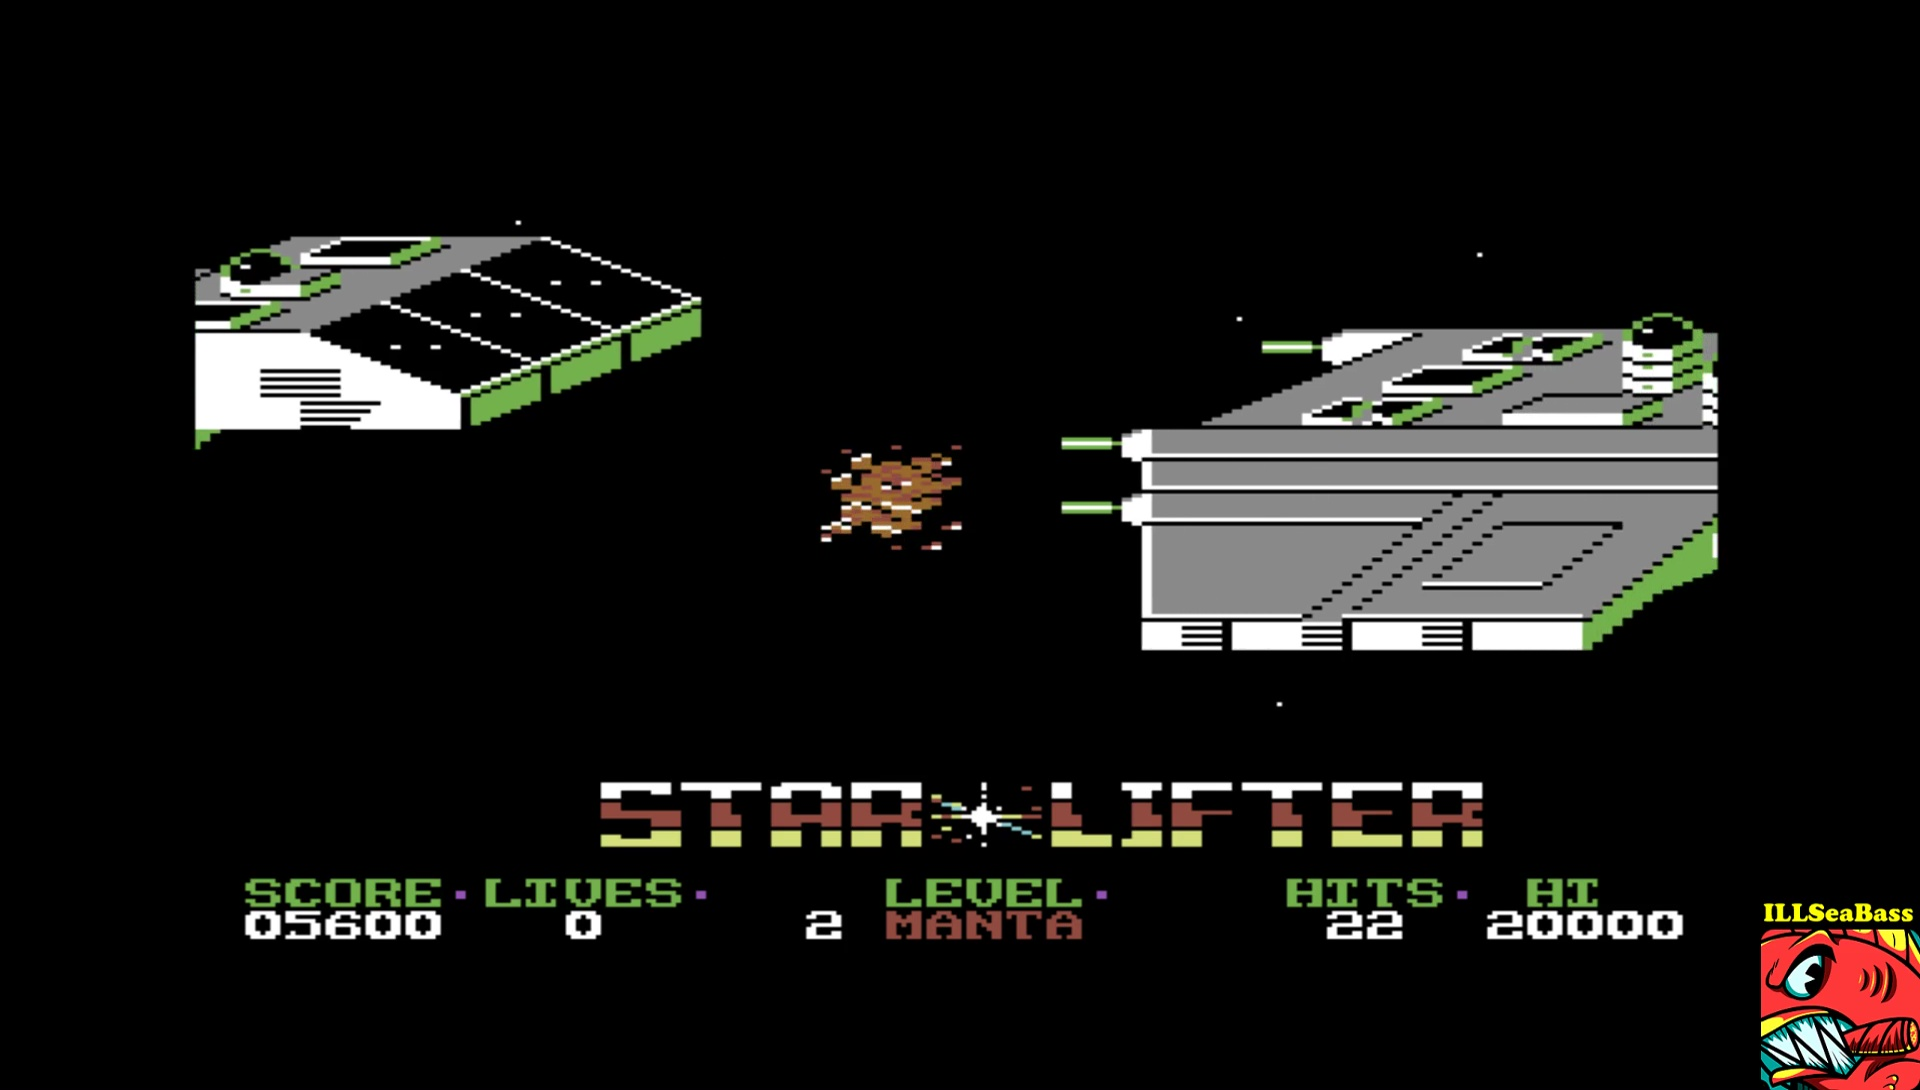 ILLSeaBass: Starlifter (Commodore 64 Emulated) 5,600 points on 2017-04-22 23:08:07